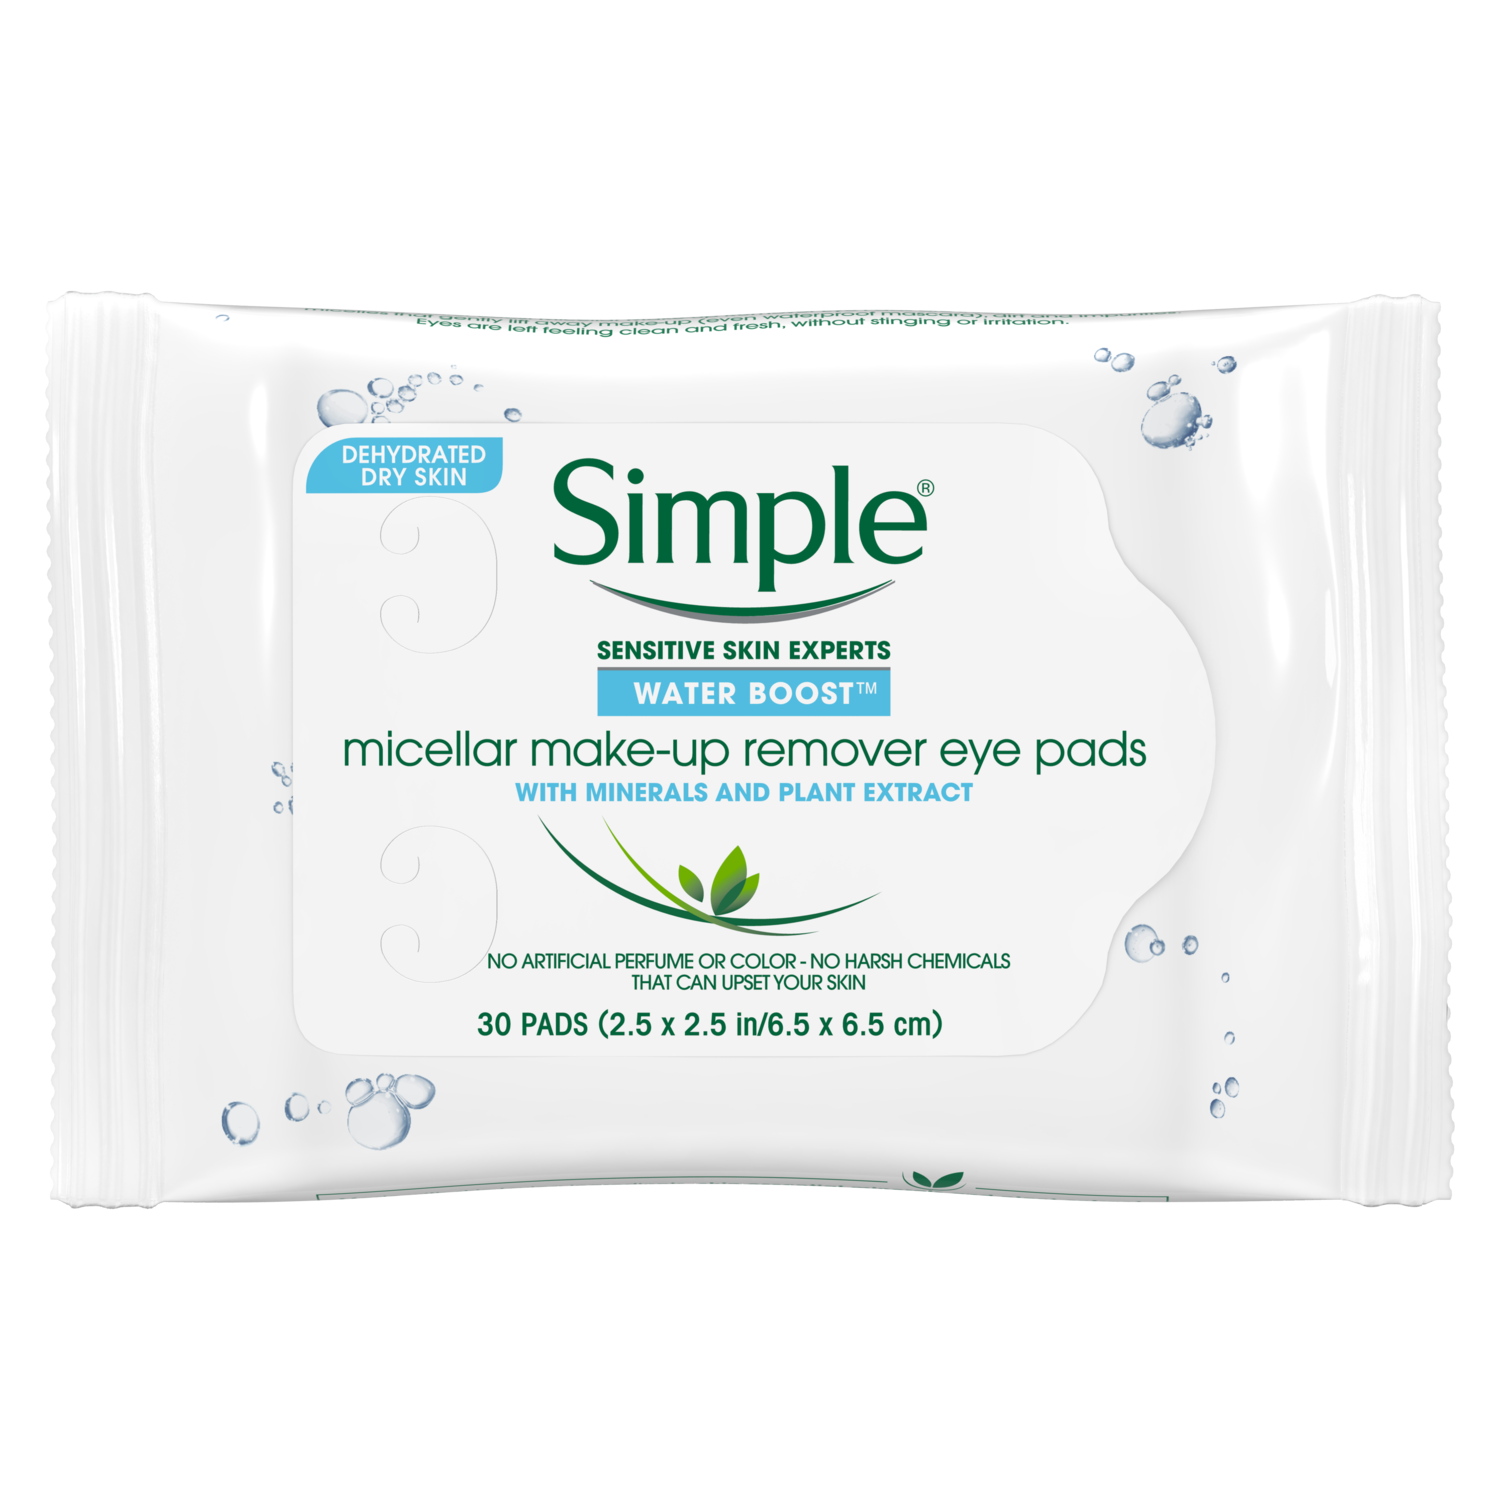 Simple Water Boost Micellar Make up Remover Eye Pads 30 ct